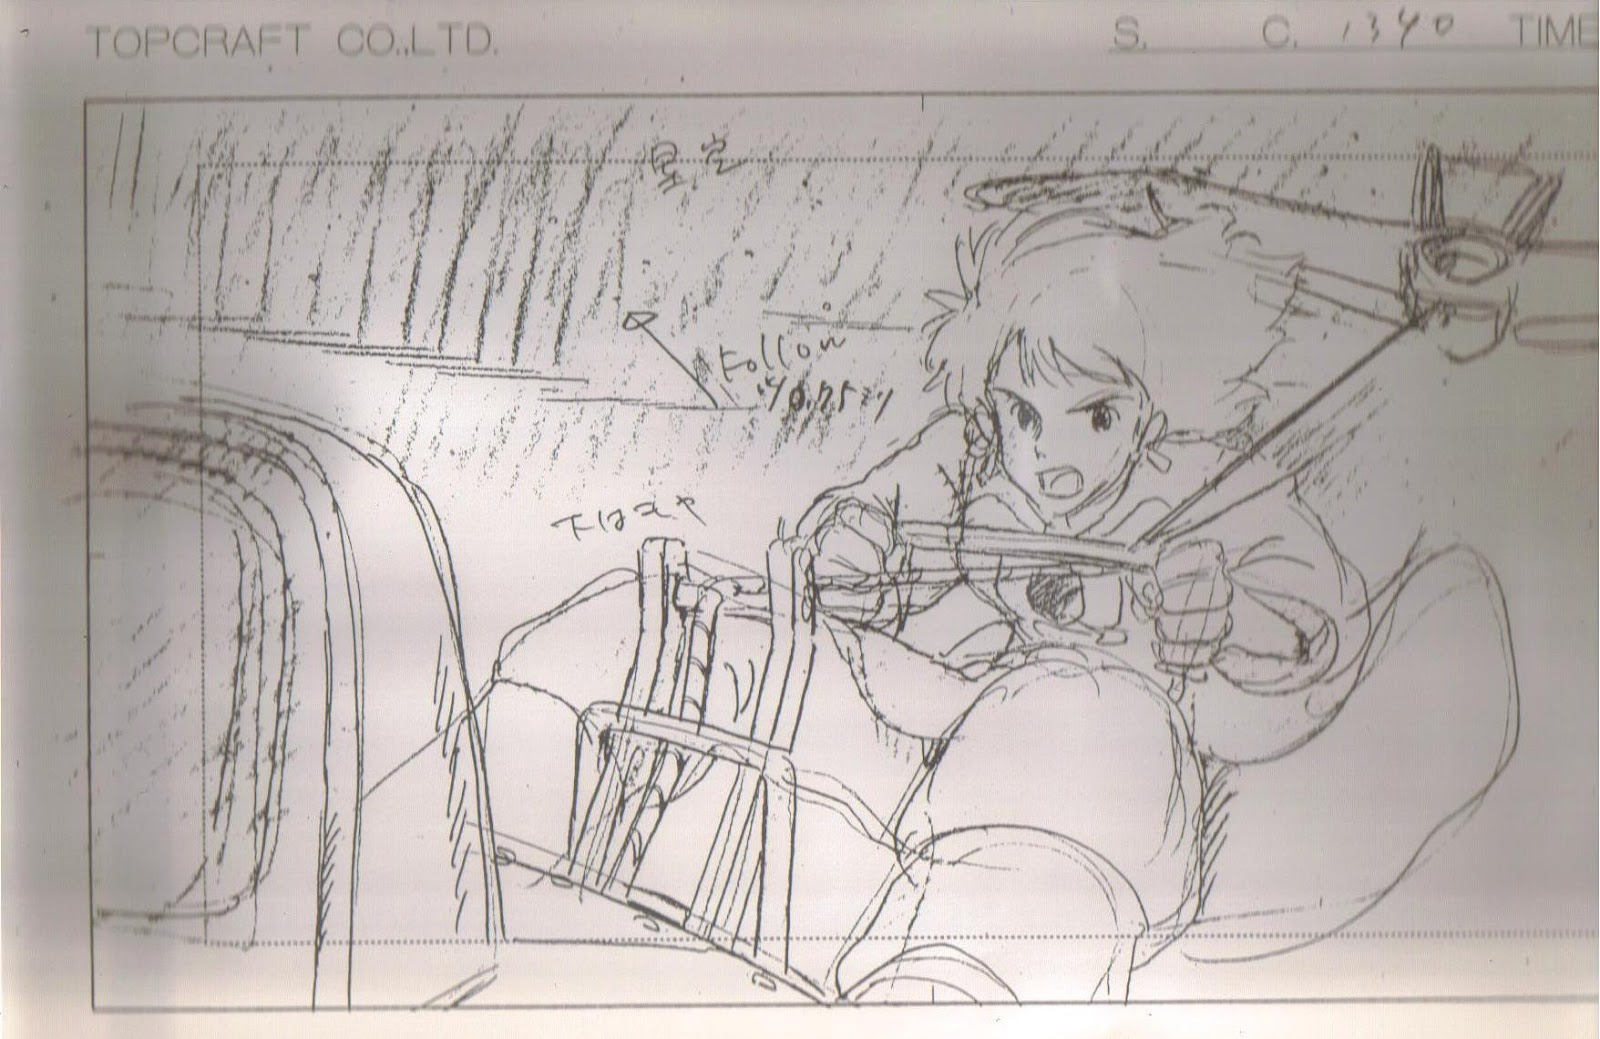 nausicaa_of_the_valley_of_the_wind_concept_art_storyboard_13.jpg